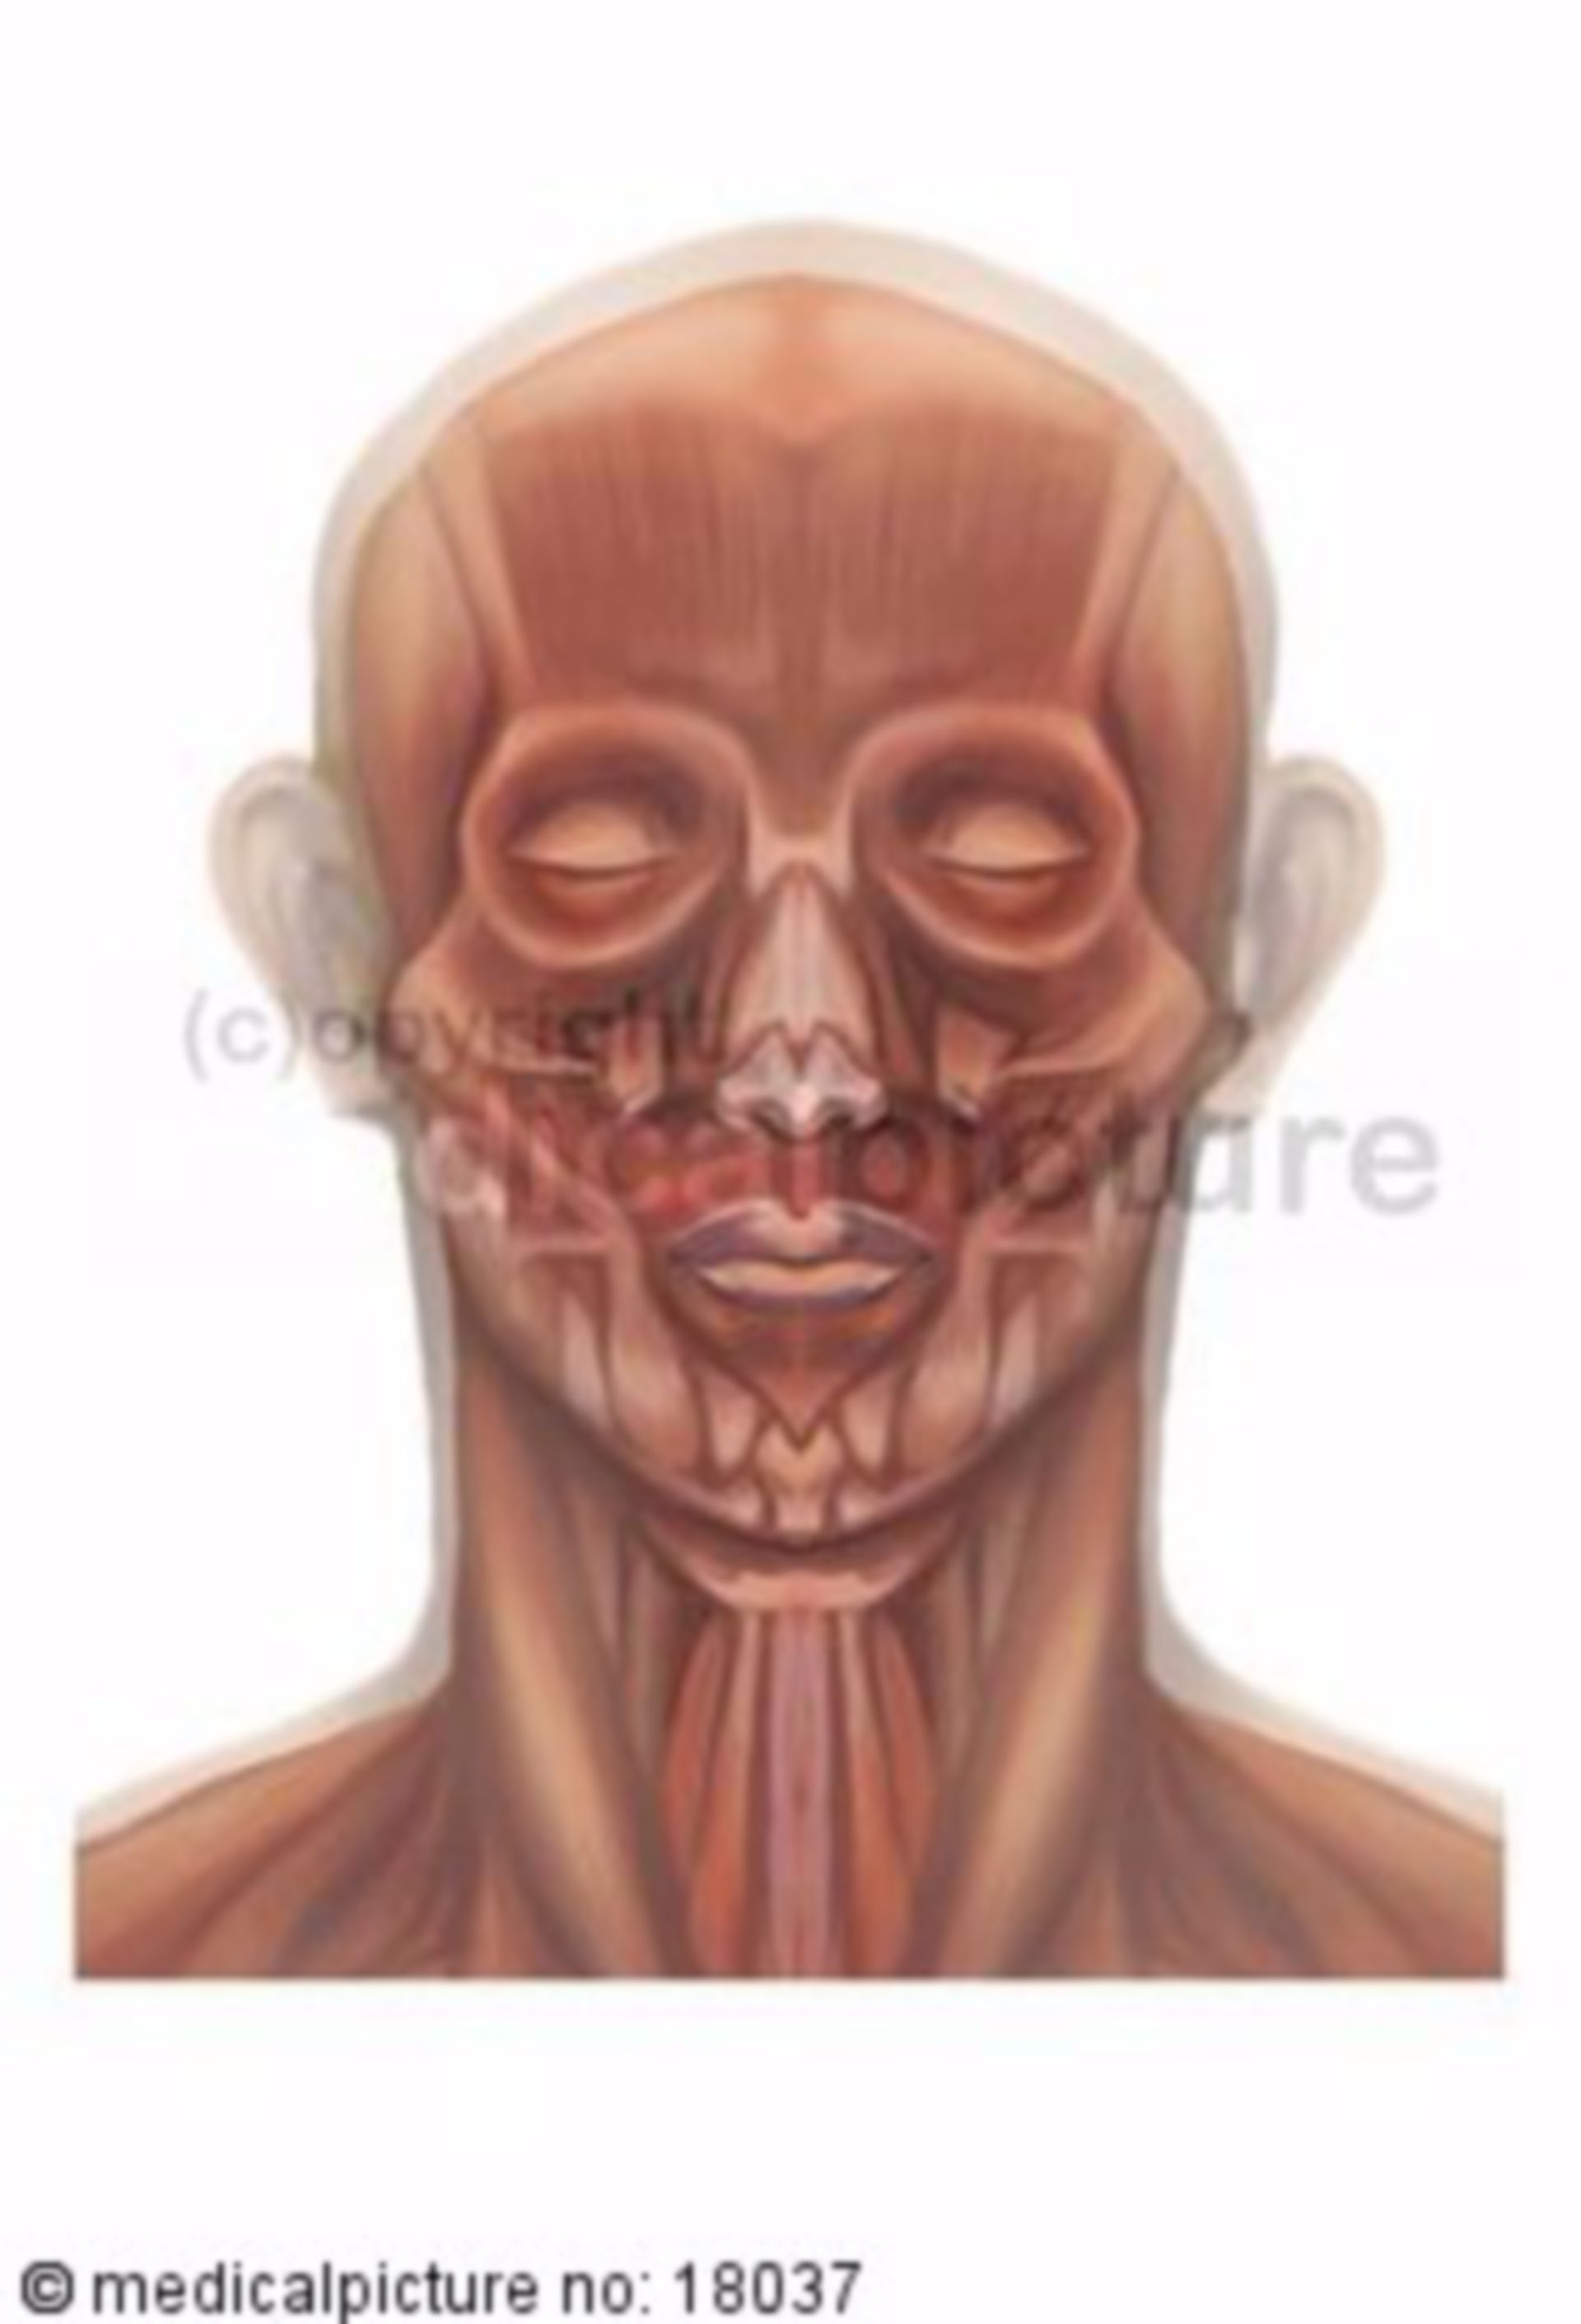 Plastic depiction of the head and neck muscles